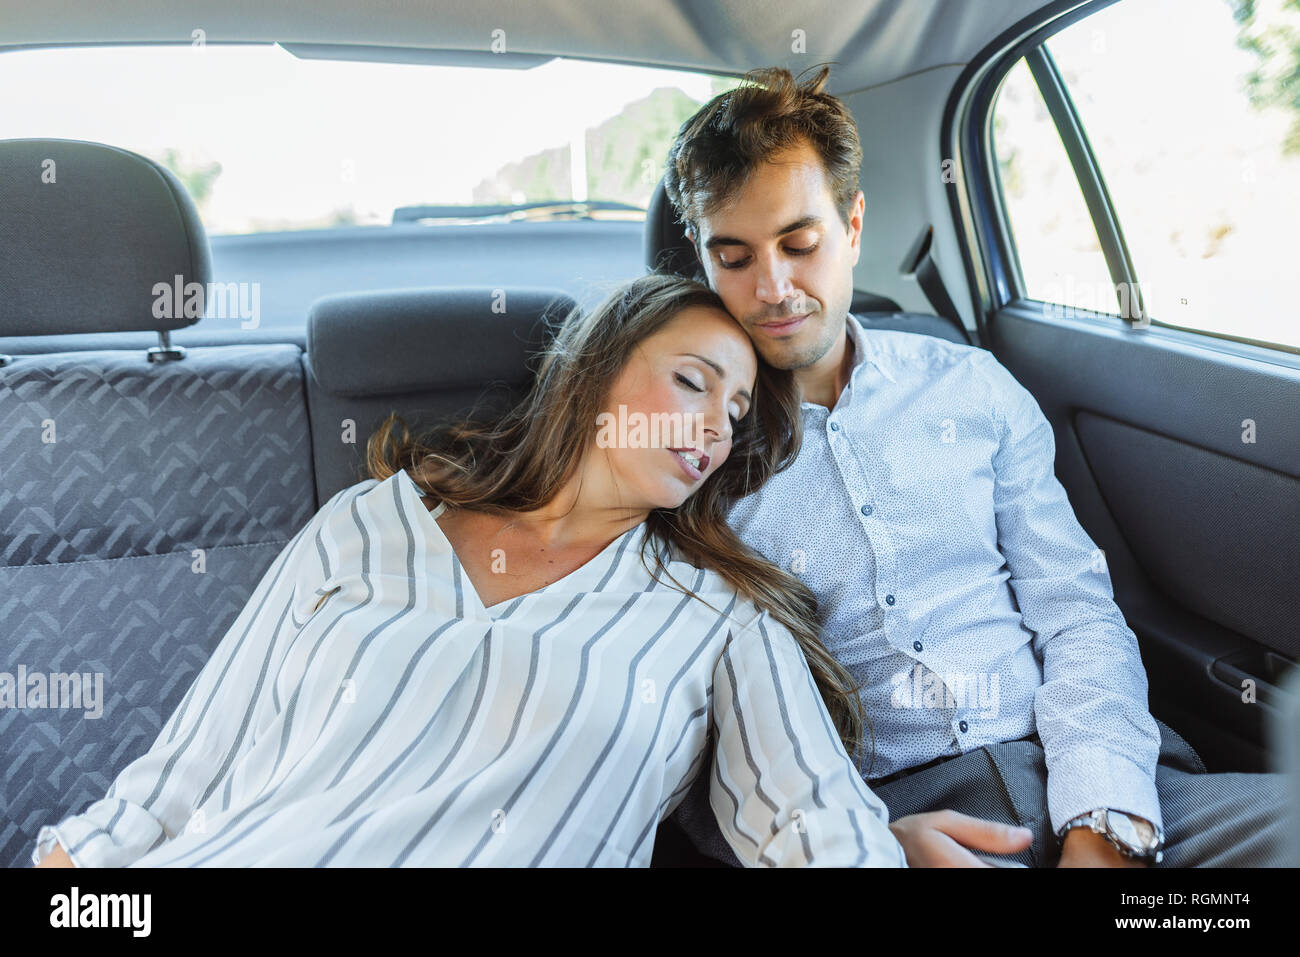 Woman sleeping on back seat of a car leaning against man - Stock Image